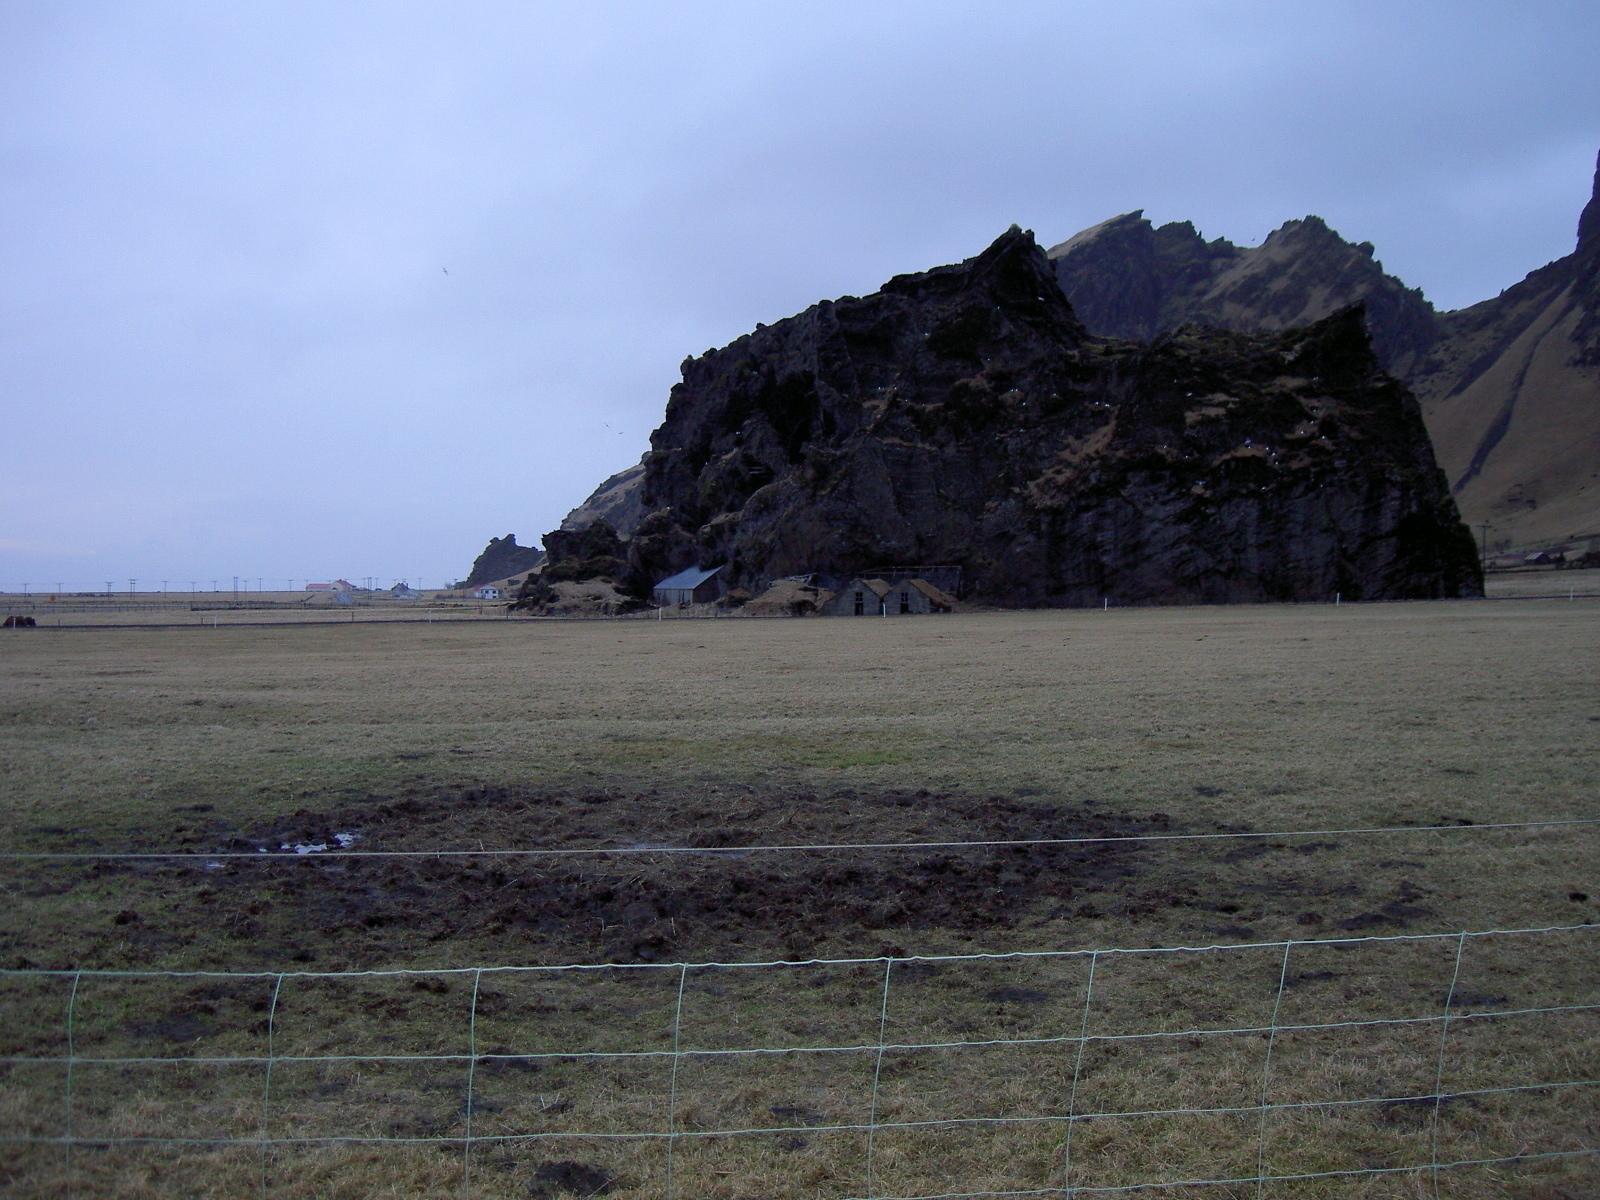 South Iceland (purpose of page is to display an image)